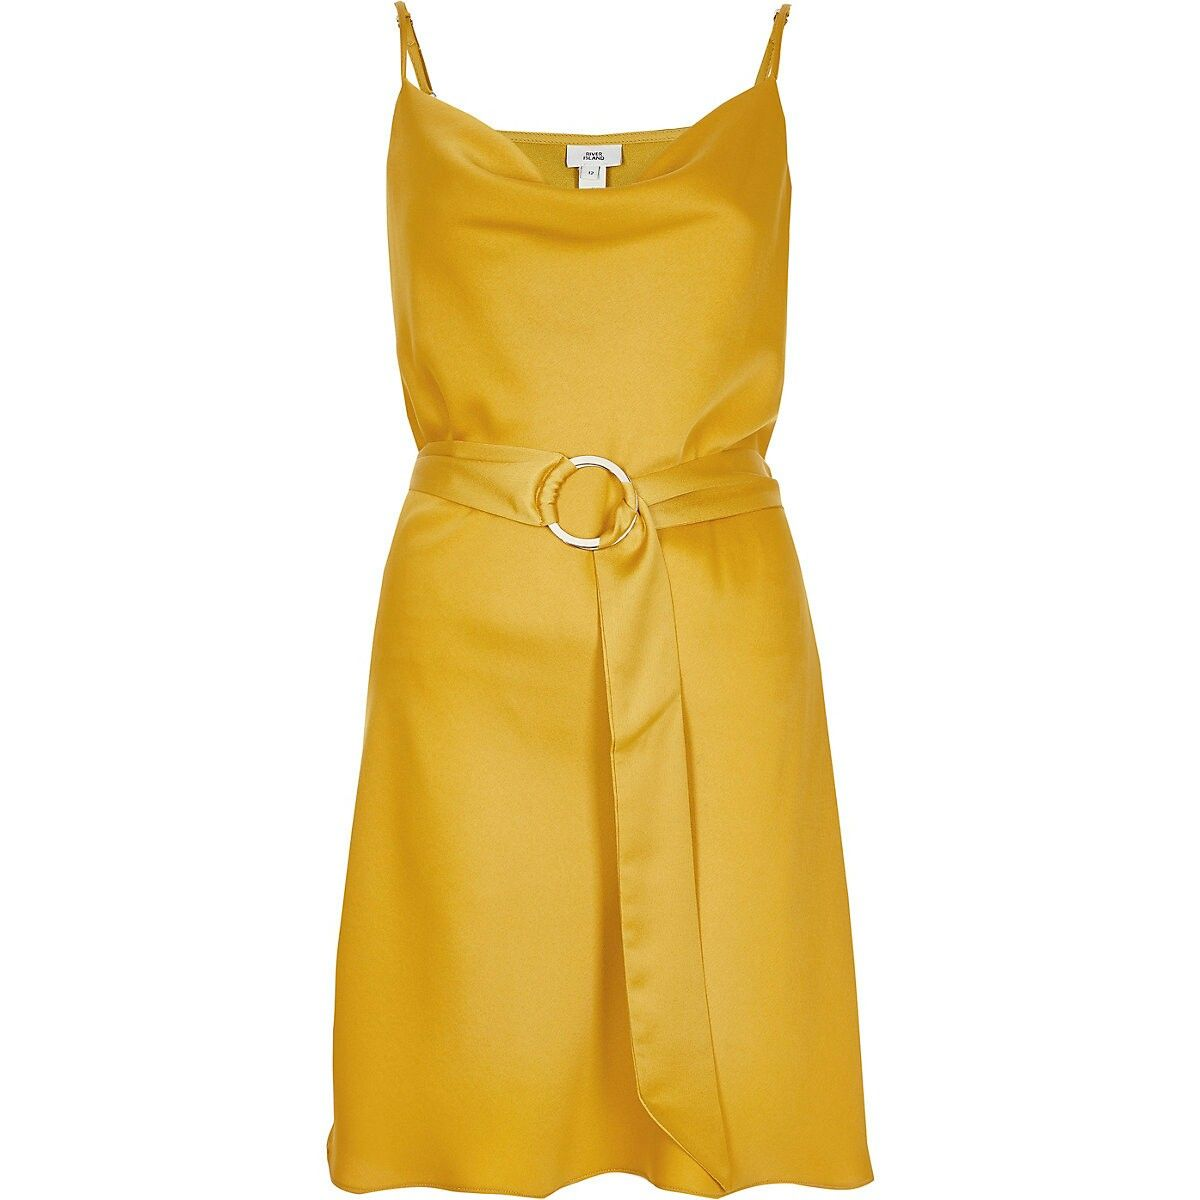 68114c5ceb302 Yellow cowl neck belted slip dress | Short Dresses x2 in 2019 ...